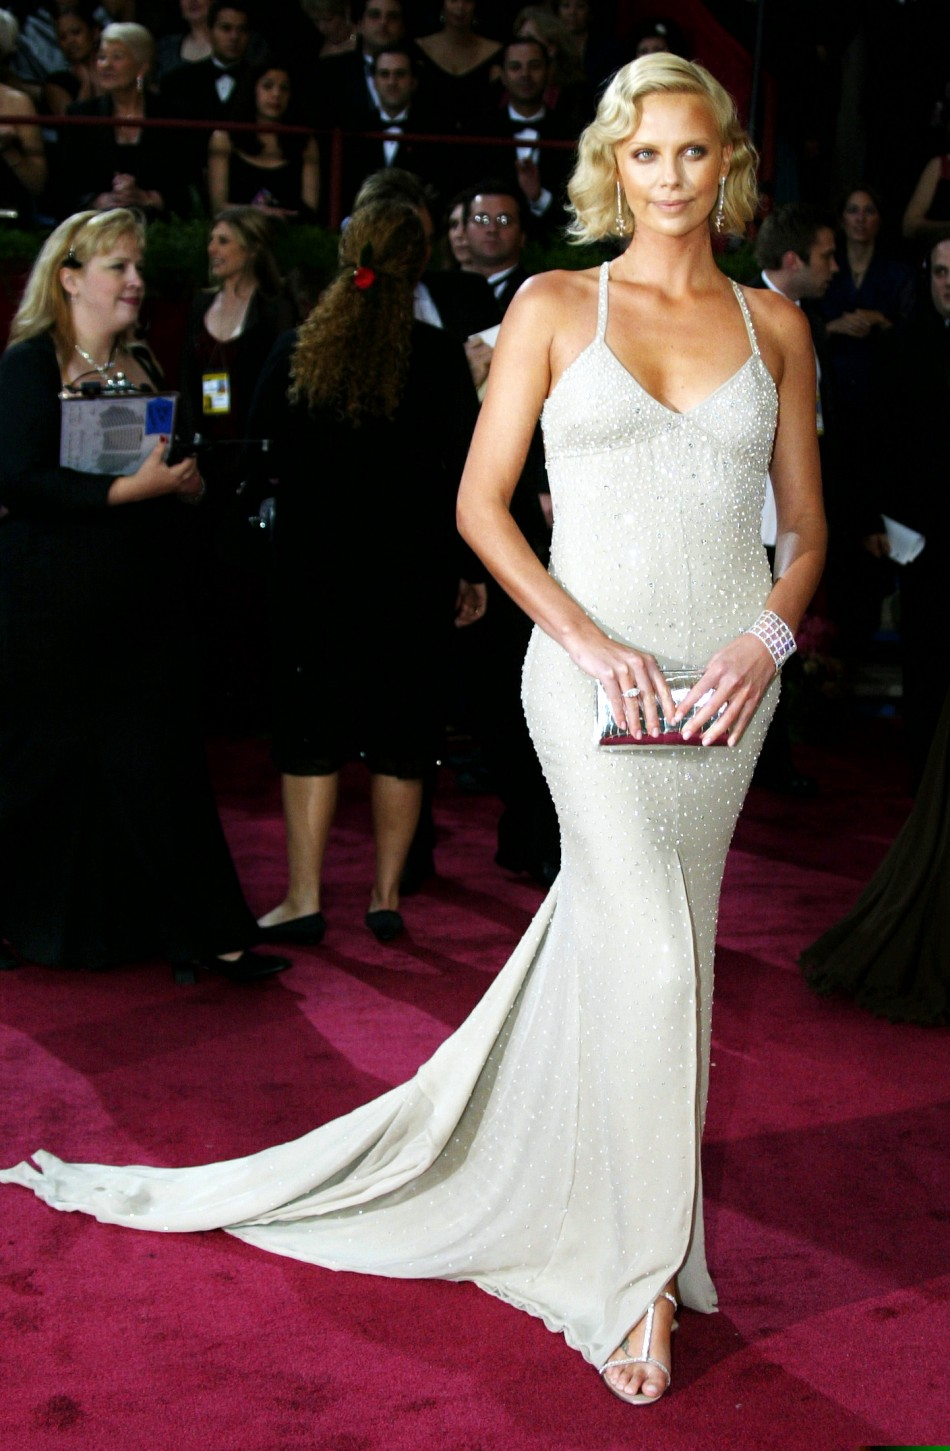 Oscar Awards Red Carpet Hottest Outfits in the Last Decade ...  Oscar Awards Re...